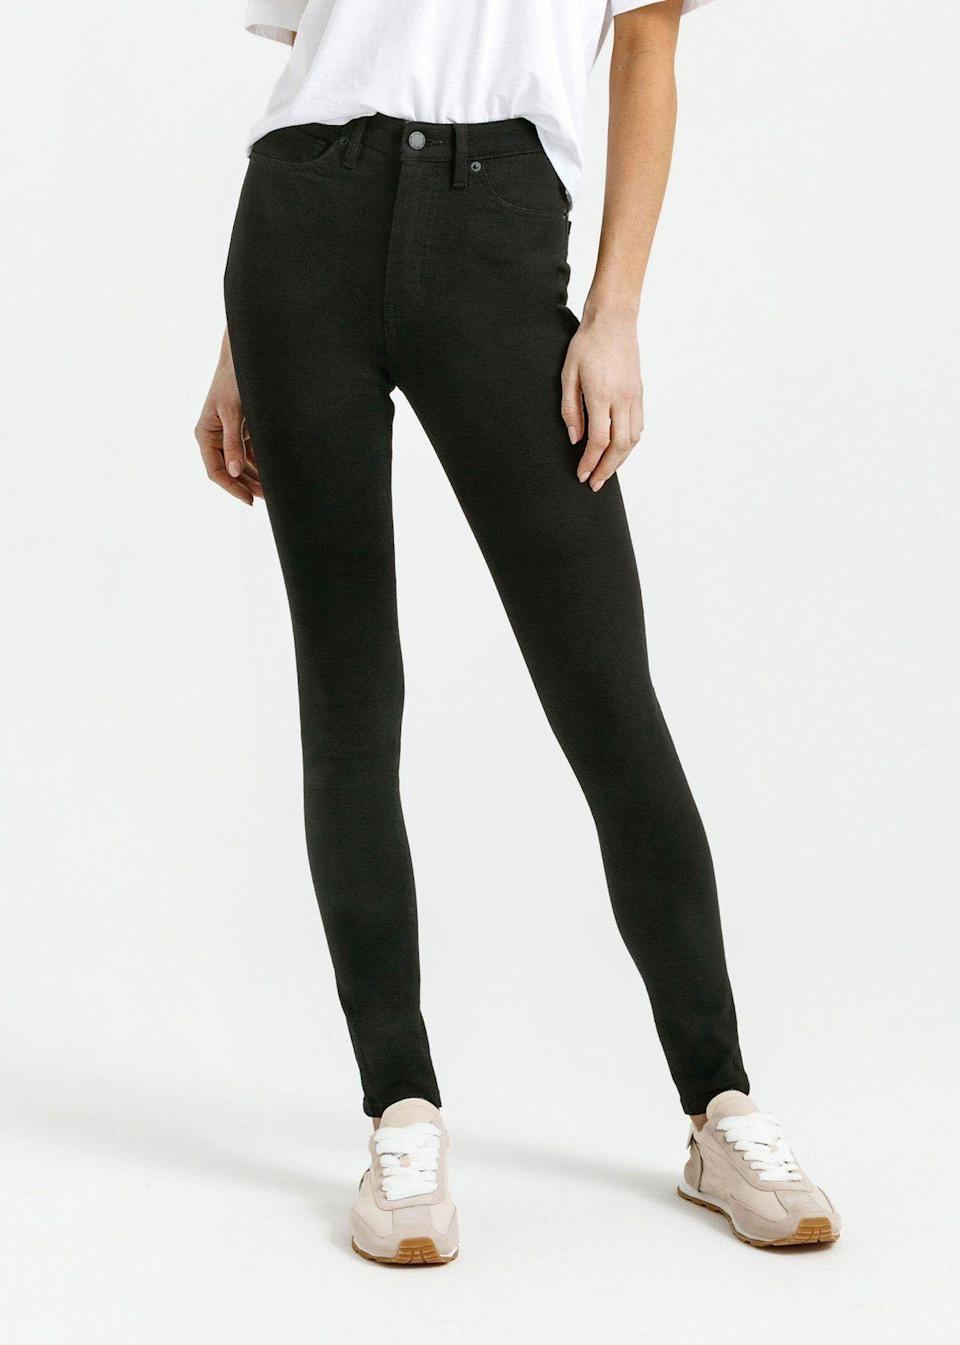 """<p><strong>Four Way Flex High Rise Skinny</strong></p><p>shopduer.com</p><p><strong>$119.00</strong></p><p><a href=""""https://go.redirectingat.com?id=74968X1596630&url=https%3A%2F%2Fshopduer.com%2Fcollections%2Fwomens%2Fproducts%2Fwomens-four-way-stretch-high-rise-skinny%3Fcolor%3Dblack&sref=https%3A%2F%2Fwww.prevention.com%2Ffitness%2Fworkout-clothes-gear%2Fg36840253%2Fbest-athleisure-brands%2F"""" rel=""""nofollow noopener"""" target=""""_blank"""" data-ylk=""""slk:Shop Now"""" class=""""link rapid-noclick-resp"""">Shop Now</a></p><p><strong><a href=""""https://go.redirectingat.com?id=74968X1596630&url=https%3A%2F%2Fshopduer.com%2F&sref=https%3A%2F%2Fwww.prevention.com%2Ffitness%2Fworkout-clothes-gear%2Fg36840253%2Fbest-athleisure-brands%2F"""" rel=""""nofollow noopener"""" target=""""_blank"""" data-ylk=""""slk:Duer"""" class=""""link rapid-noclick-resp"""">Duer</a></strong> takes denim to a whole new level. Made to be performance bottoms, Duer pants (including joggers and jeans) are athleisure without looking like it. While you may not think of jeans as loungewear, this brand changes that misconception with a pair like the <a href=""""https://go.redirectingat.com?id=74968X1596630&url=https%3A%2F%2Fshopduer.com%2Fcollections%2Fwomens%2Fproducts%2Fwomens-four-way-stretch-high-rise-skinny&sref=https%3A%2F%2Fwww.prevention.com%2Ffitness%2Fworkout-clothes-gear%2Fg36840253%2Fbest-athleisure-brands%2F"""" rel=""""nofollow noopener"""" target=""""_blank"""" data-ylk=""""slk:high rise skinny jean with four way flex."""" class=""""link rapid-noclick-resp"""">high rise skinny jean with four way flex.</a></p>"""